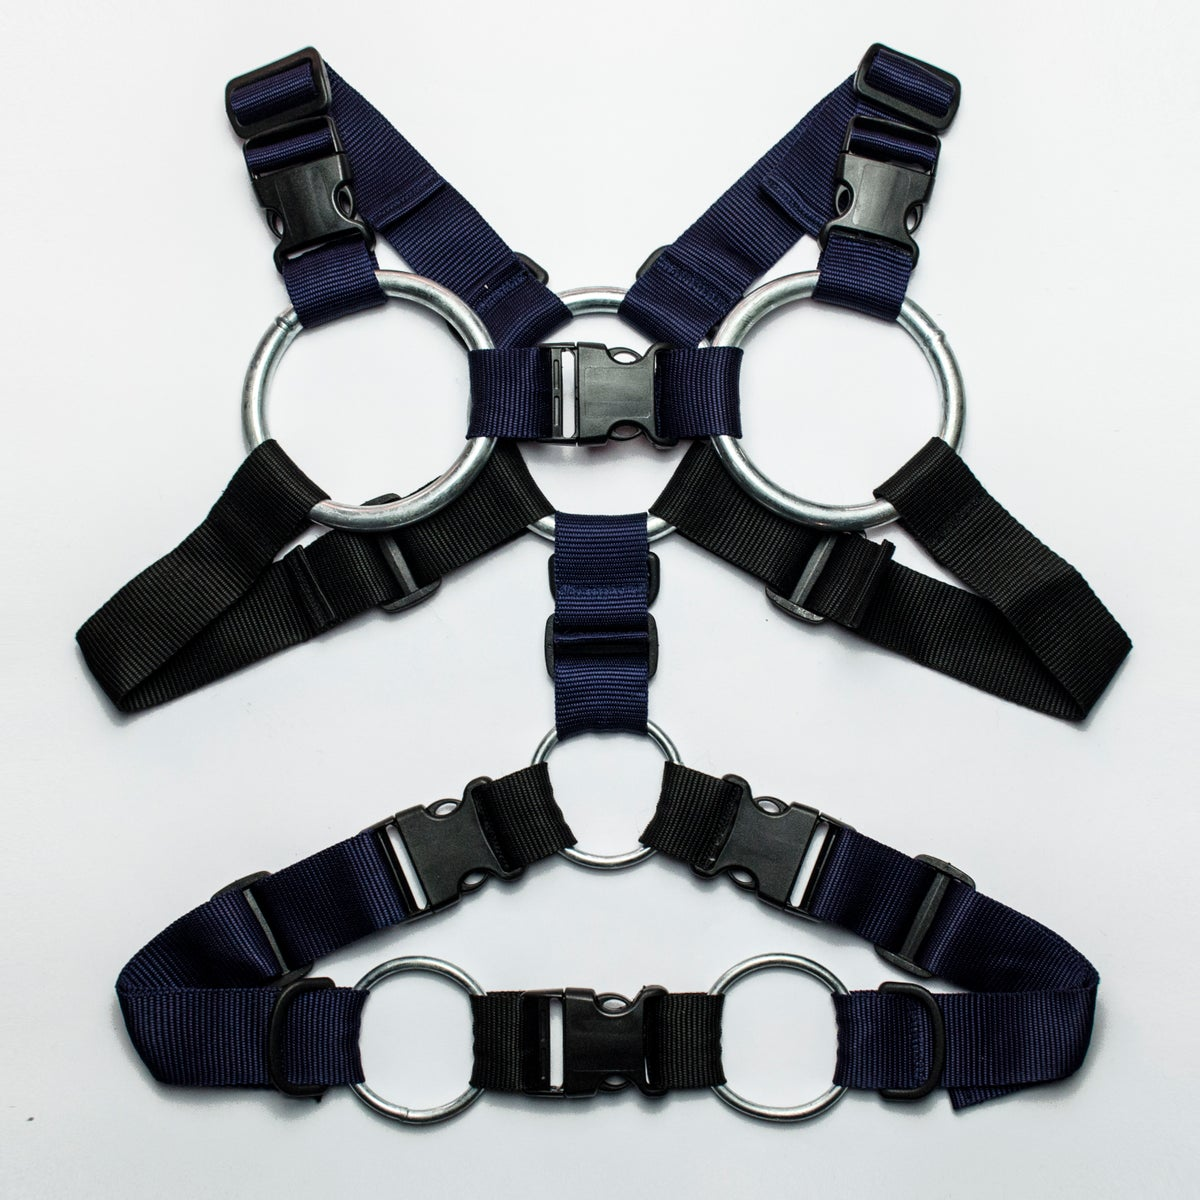 Image of TACTICAL HARNESS YT_01 / NAVY - BLACK